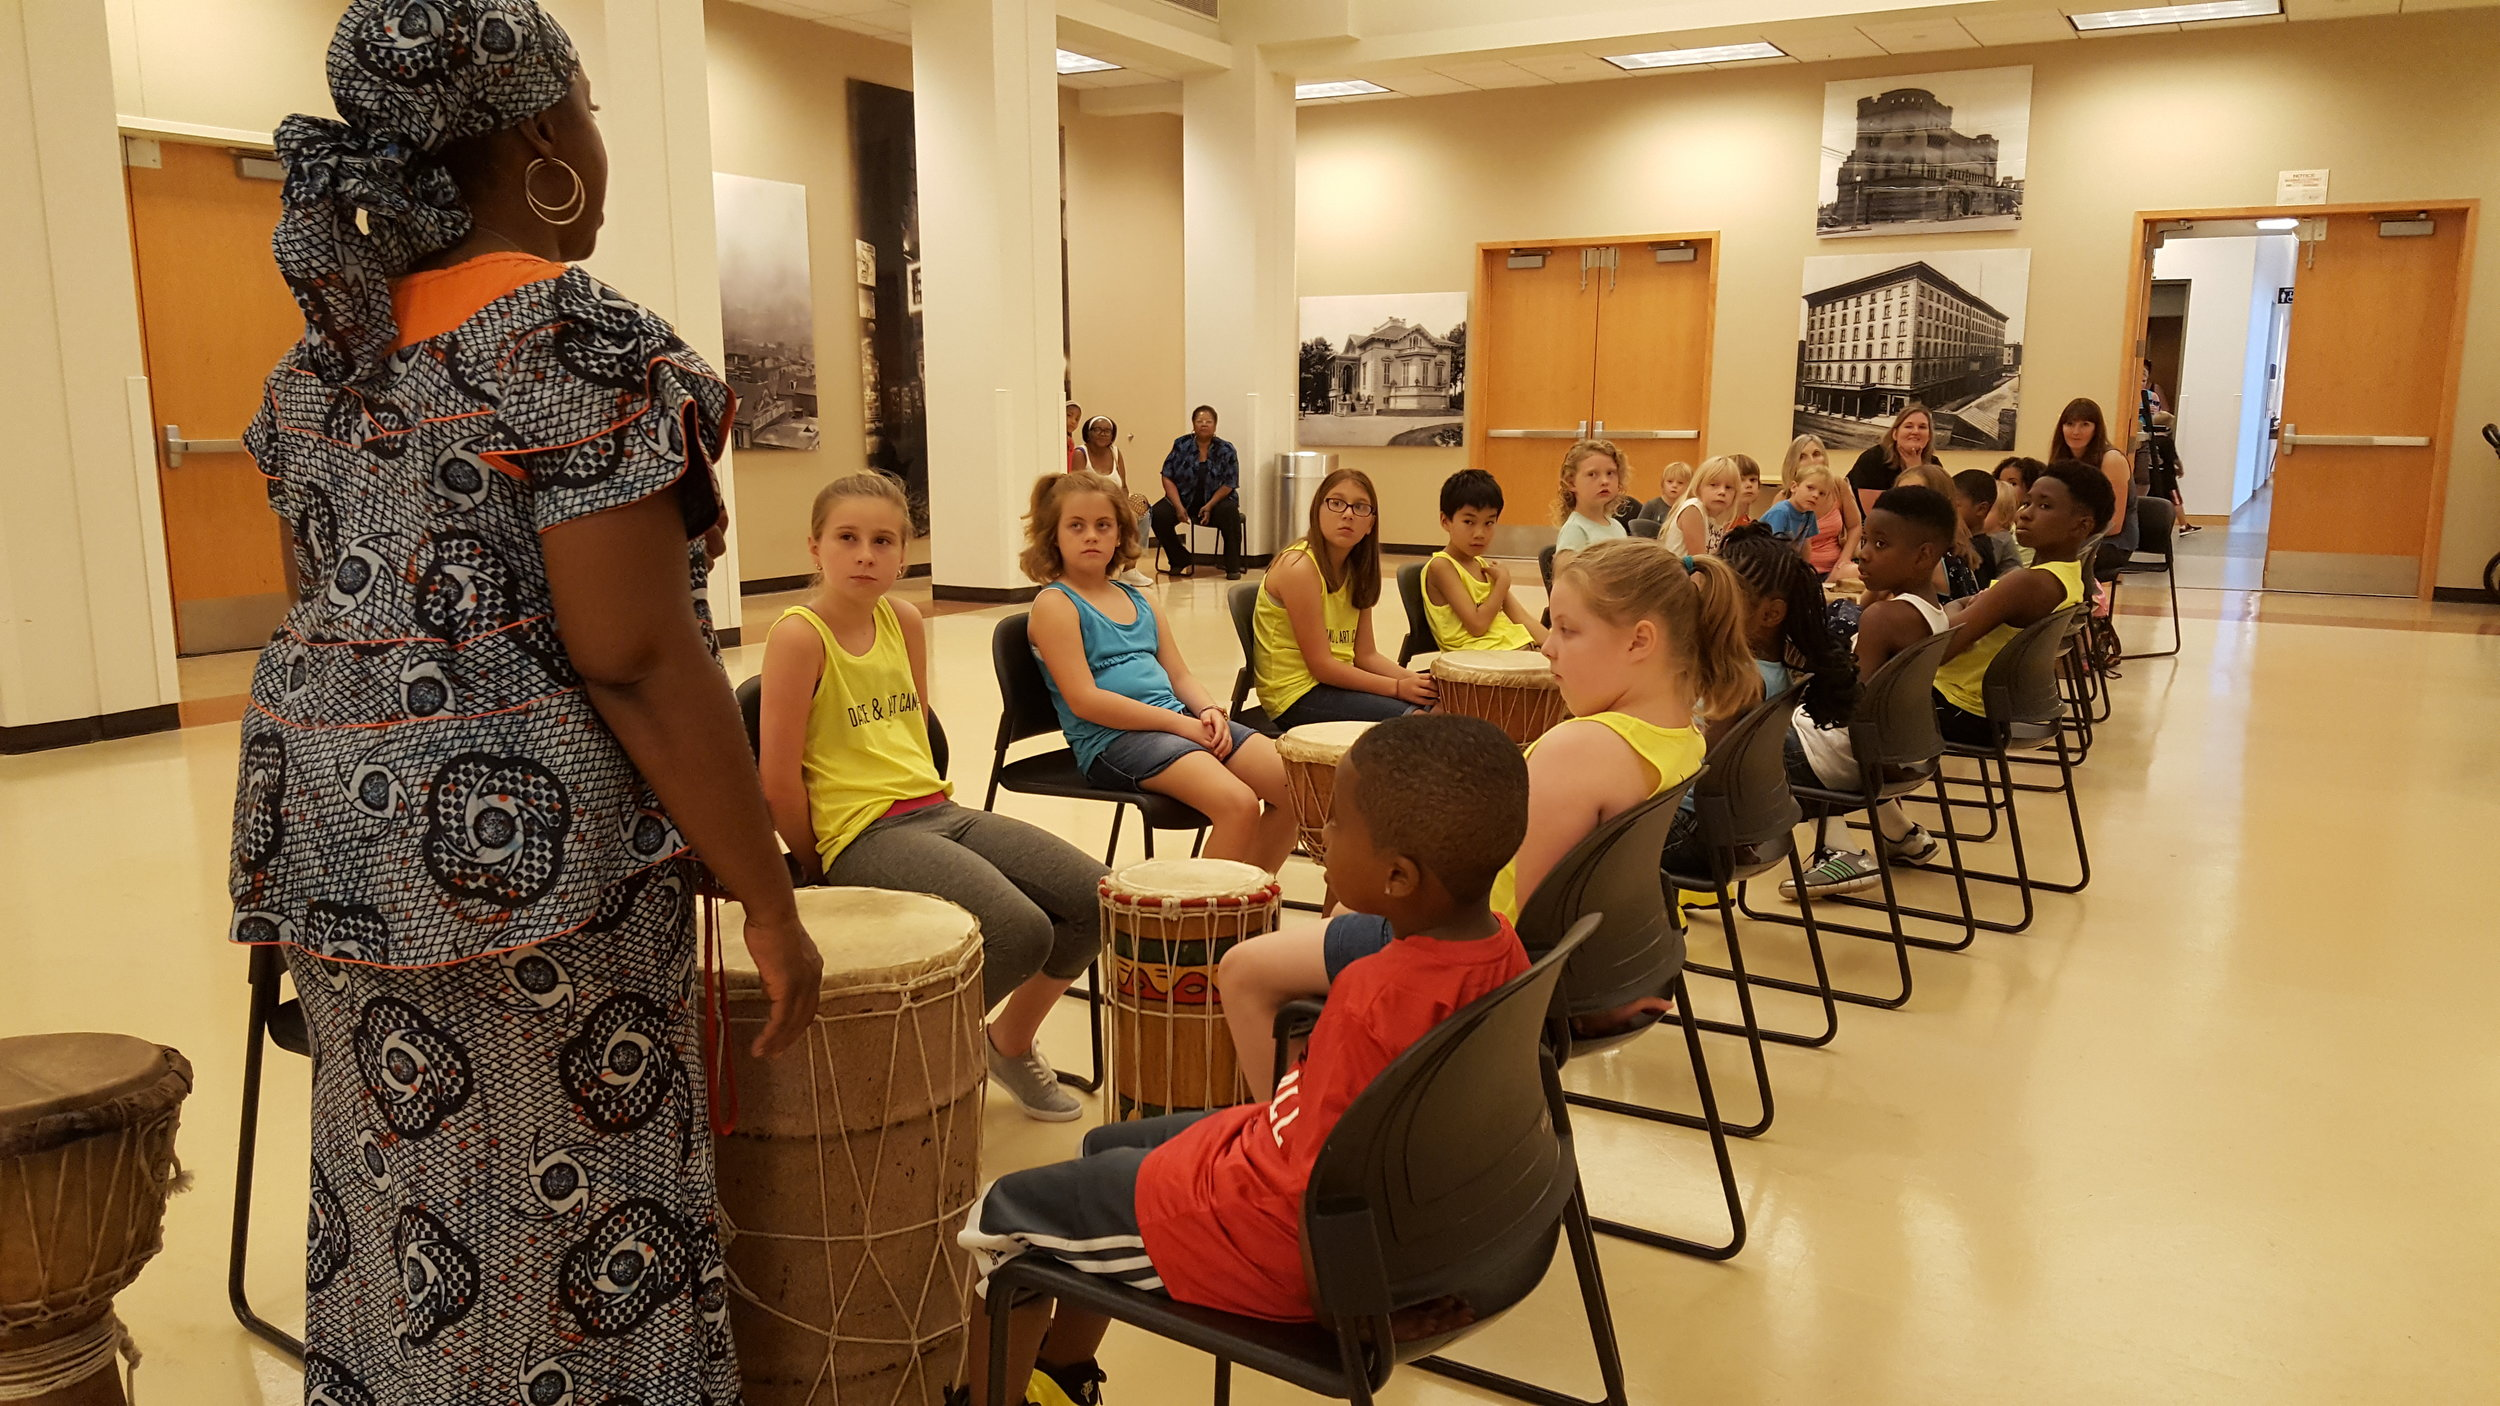 Students learn percussion/drumming skills from an educator at the St. Louis History Museum